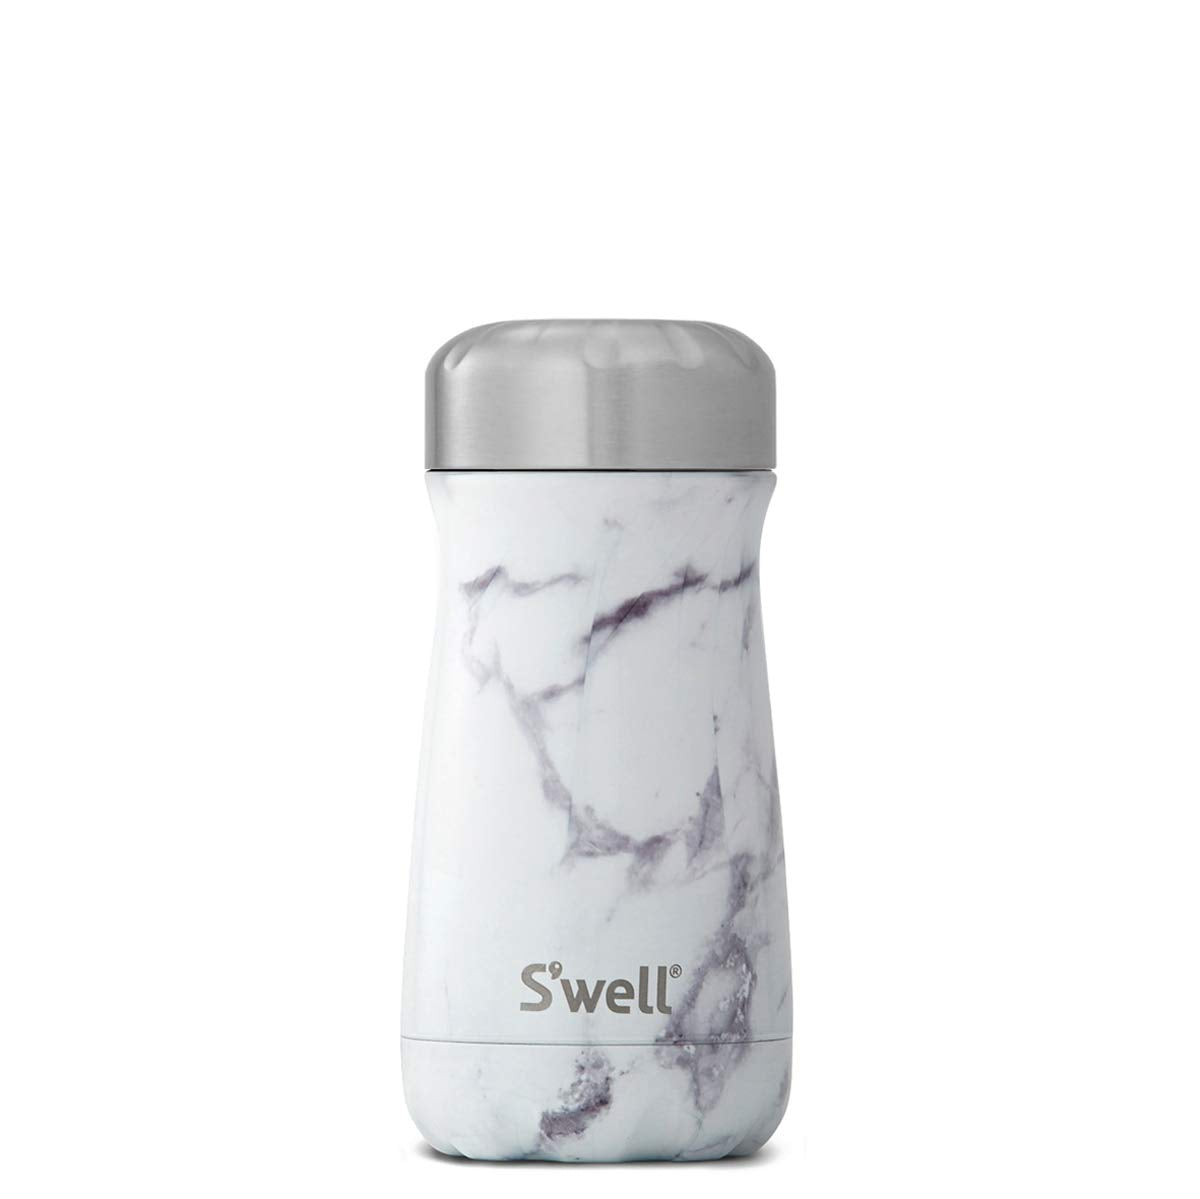 S'well Stainless Steel Travel Mug, 20oz